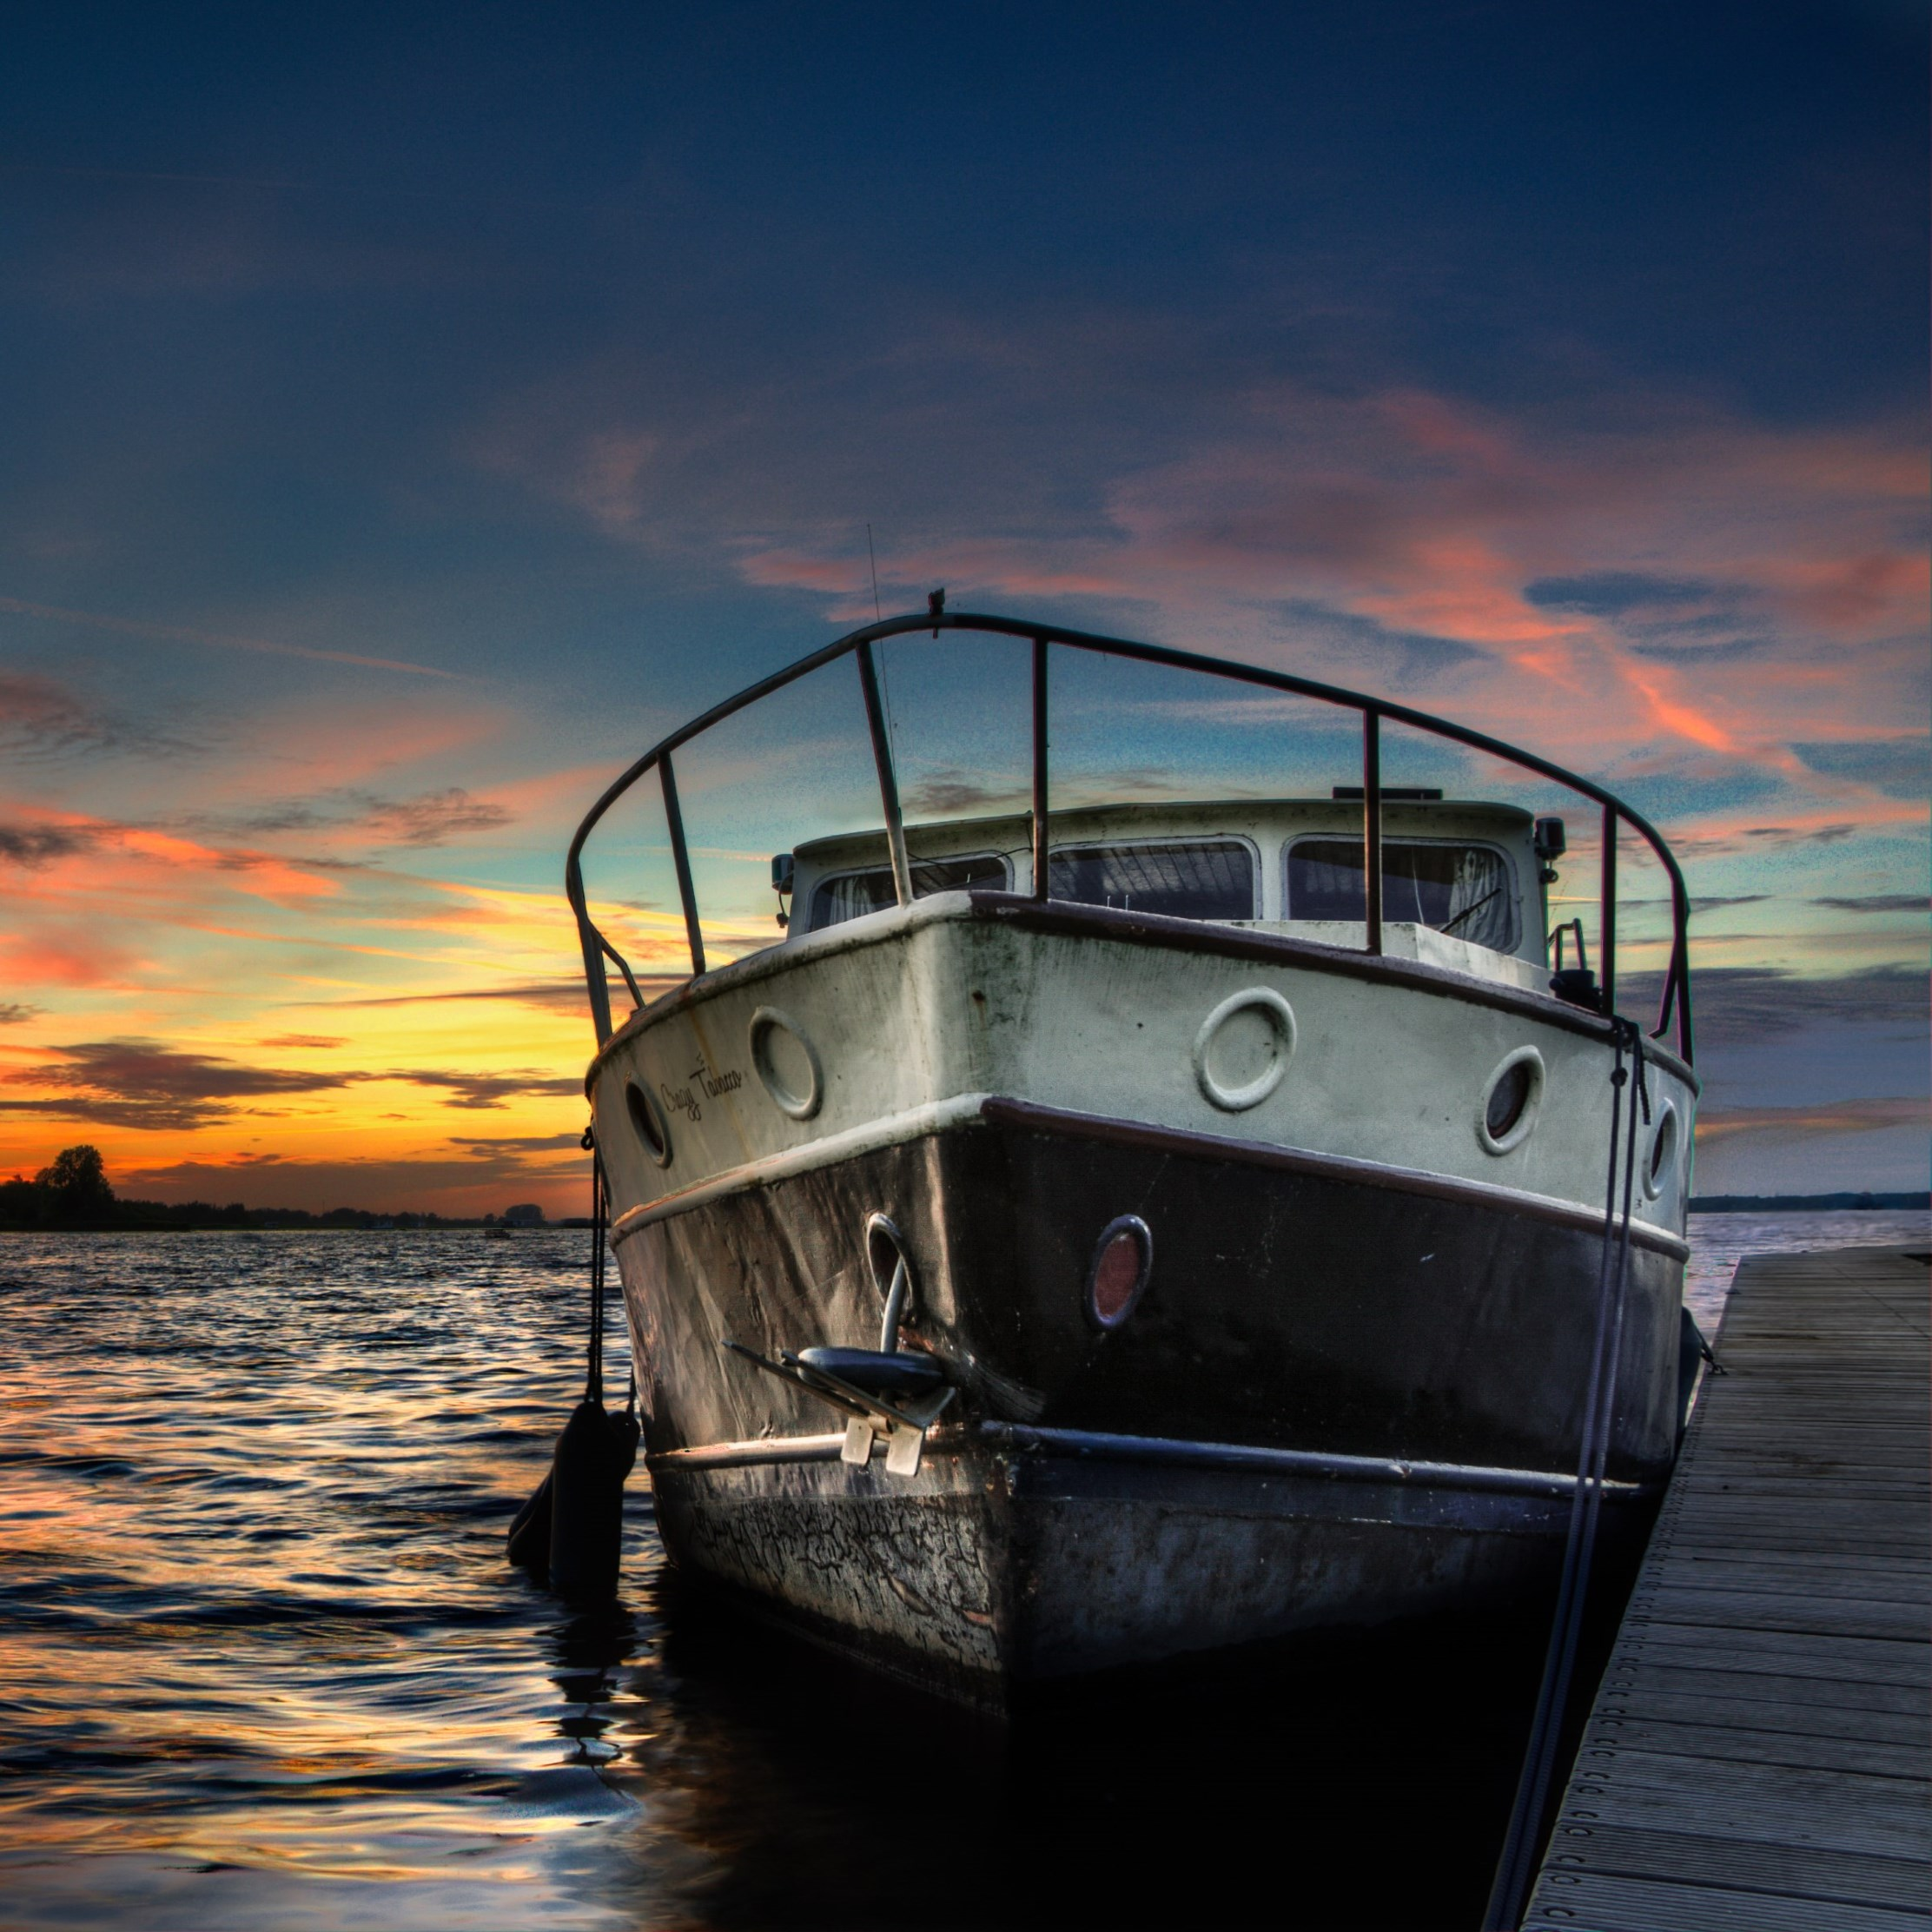 Boat and sunset in background | 2224x2224 wallpaper